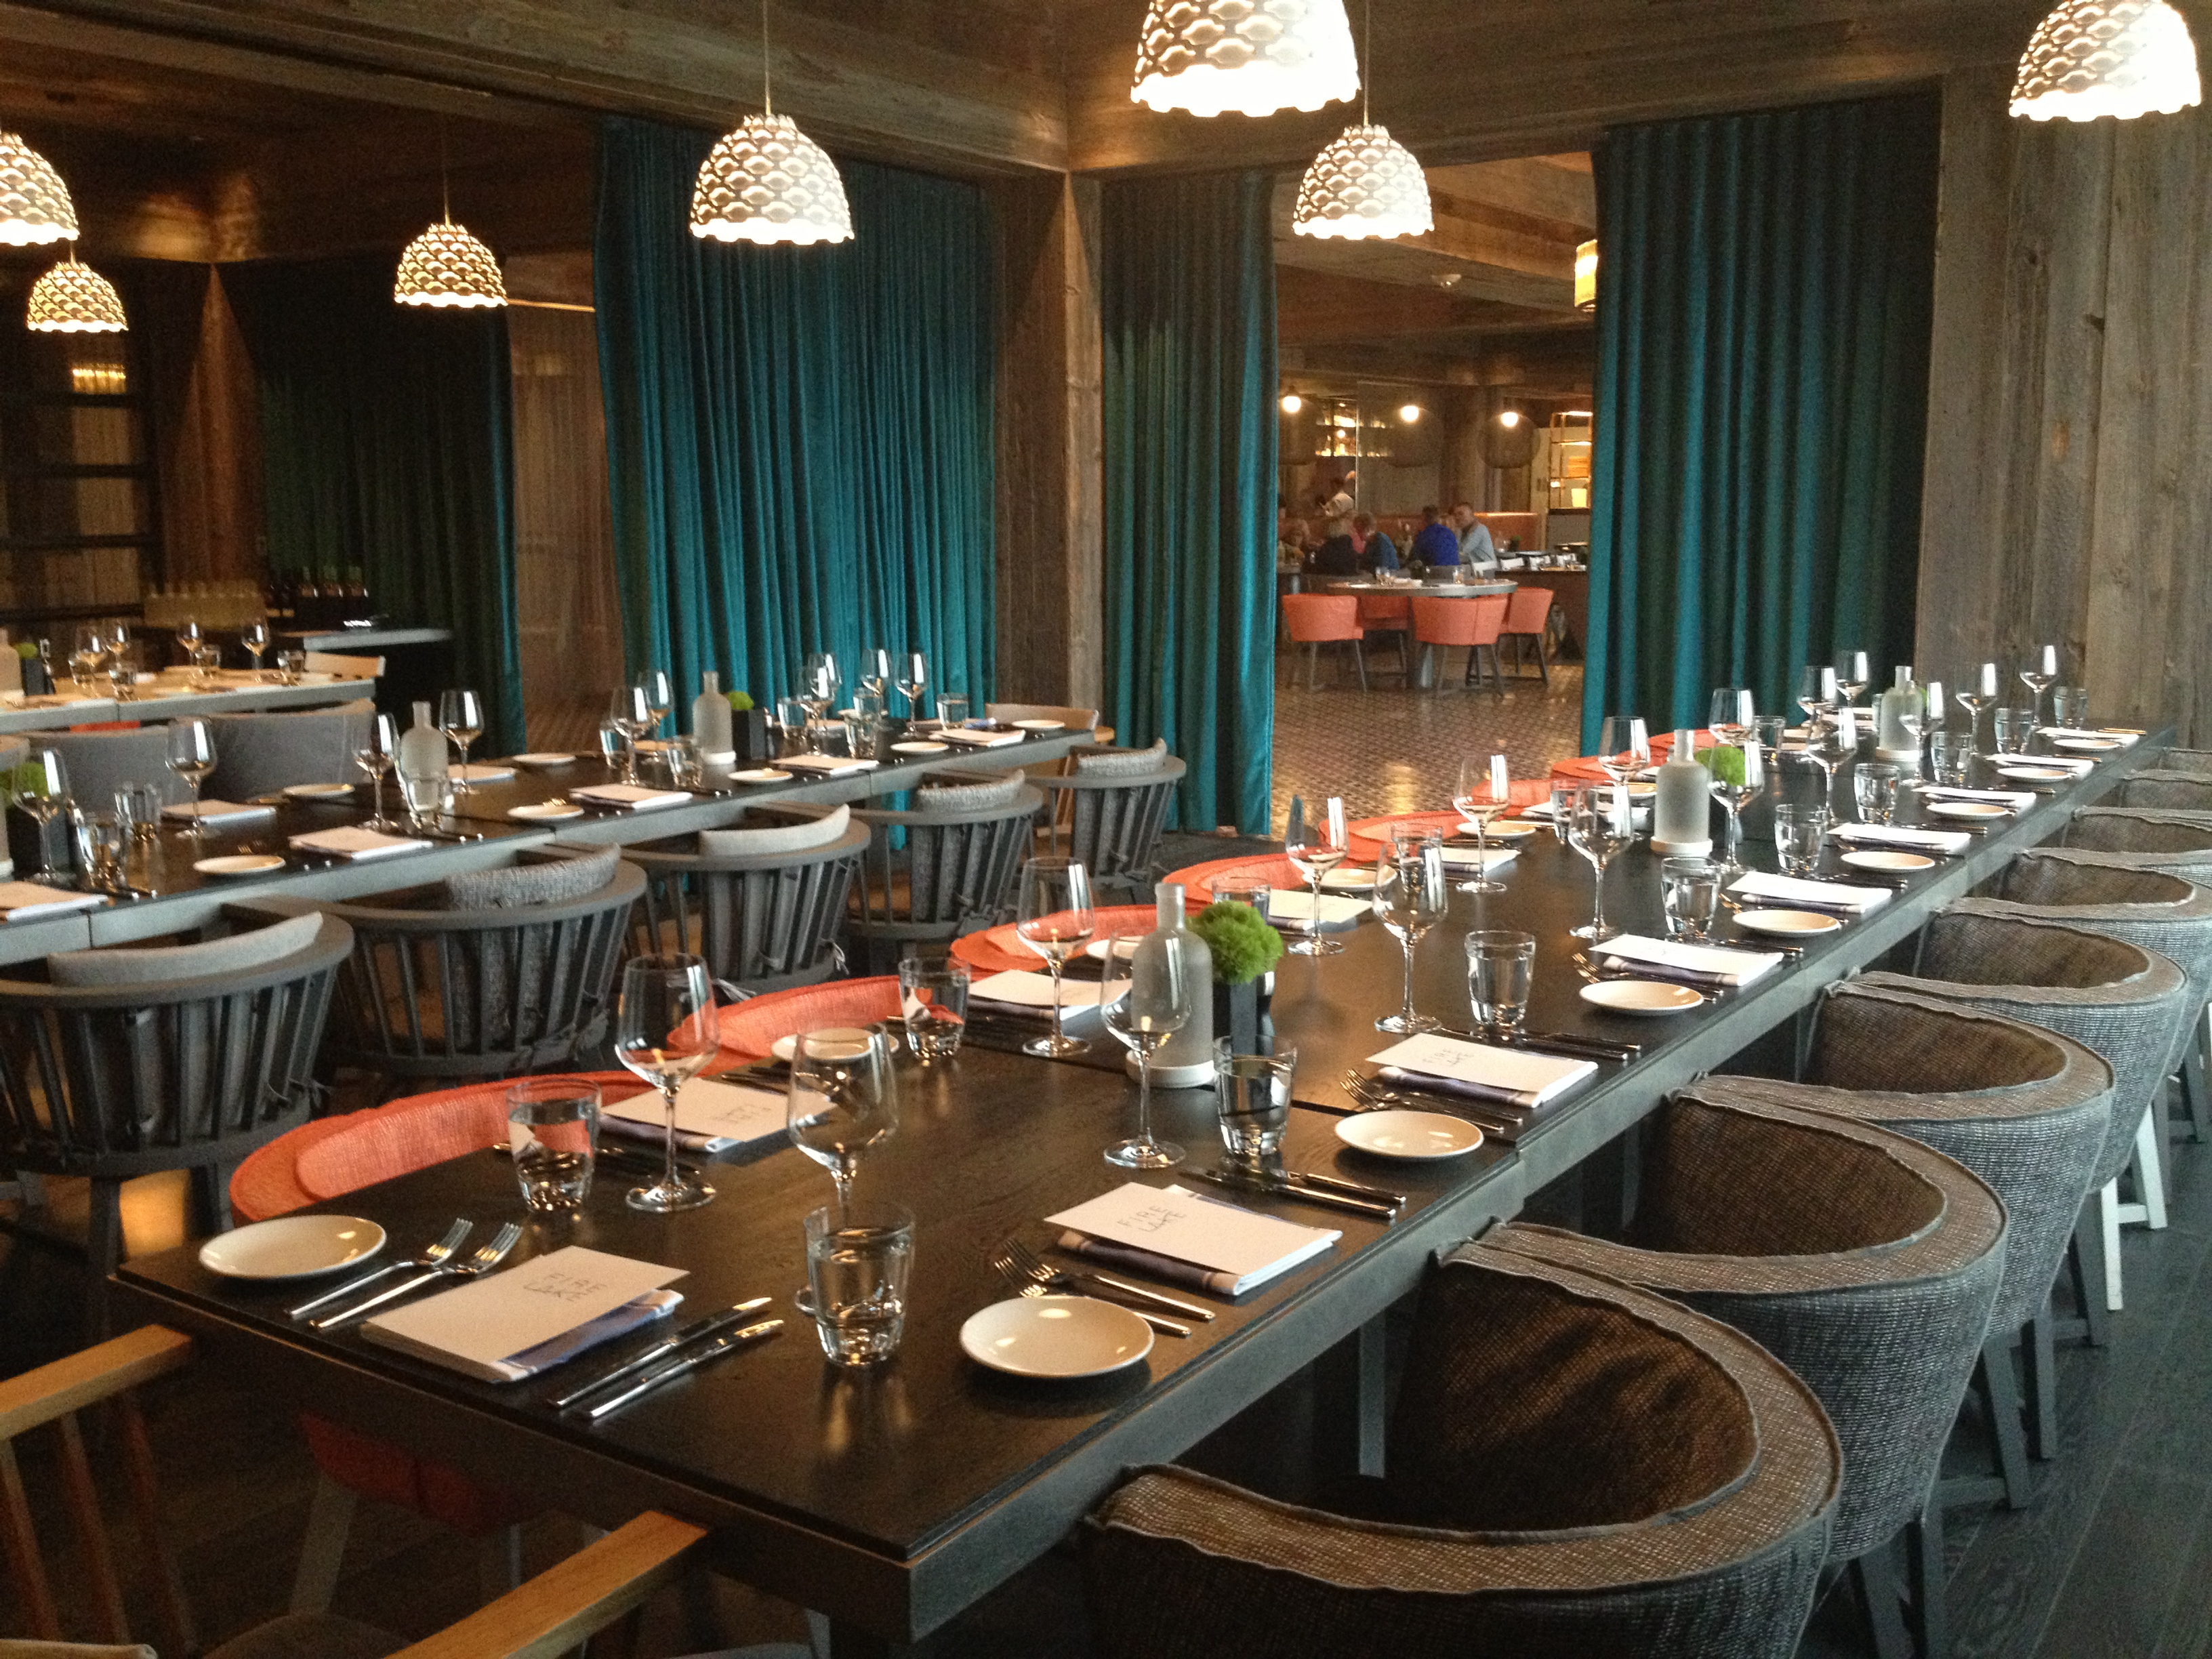 FireLake Private Dining Room 1.jpeg